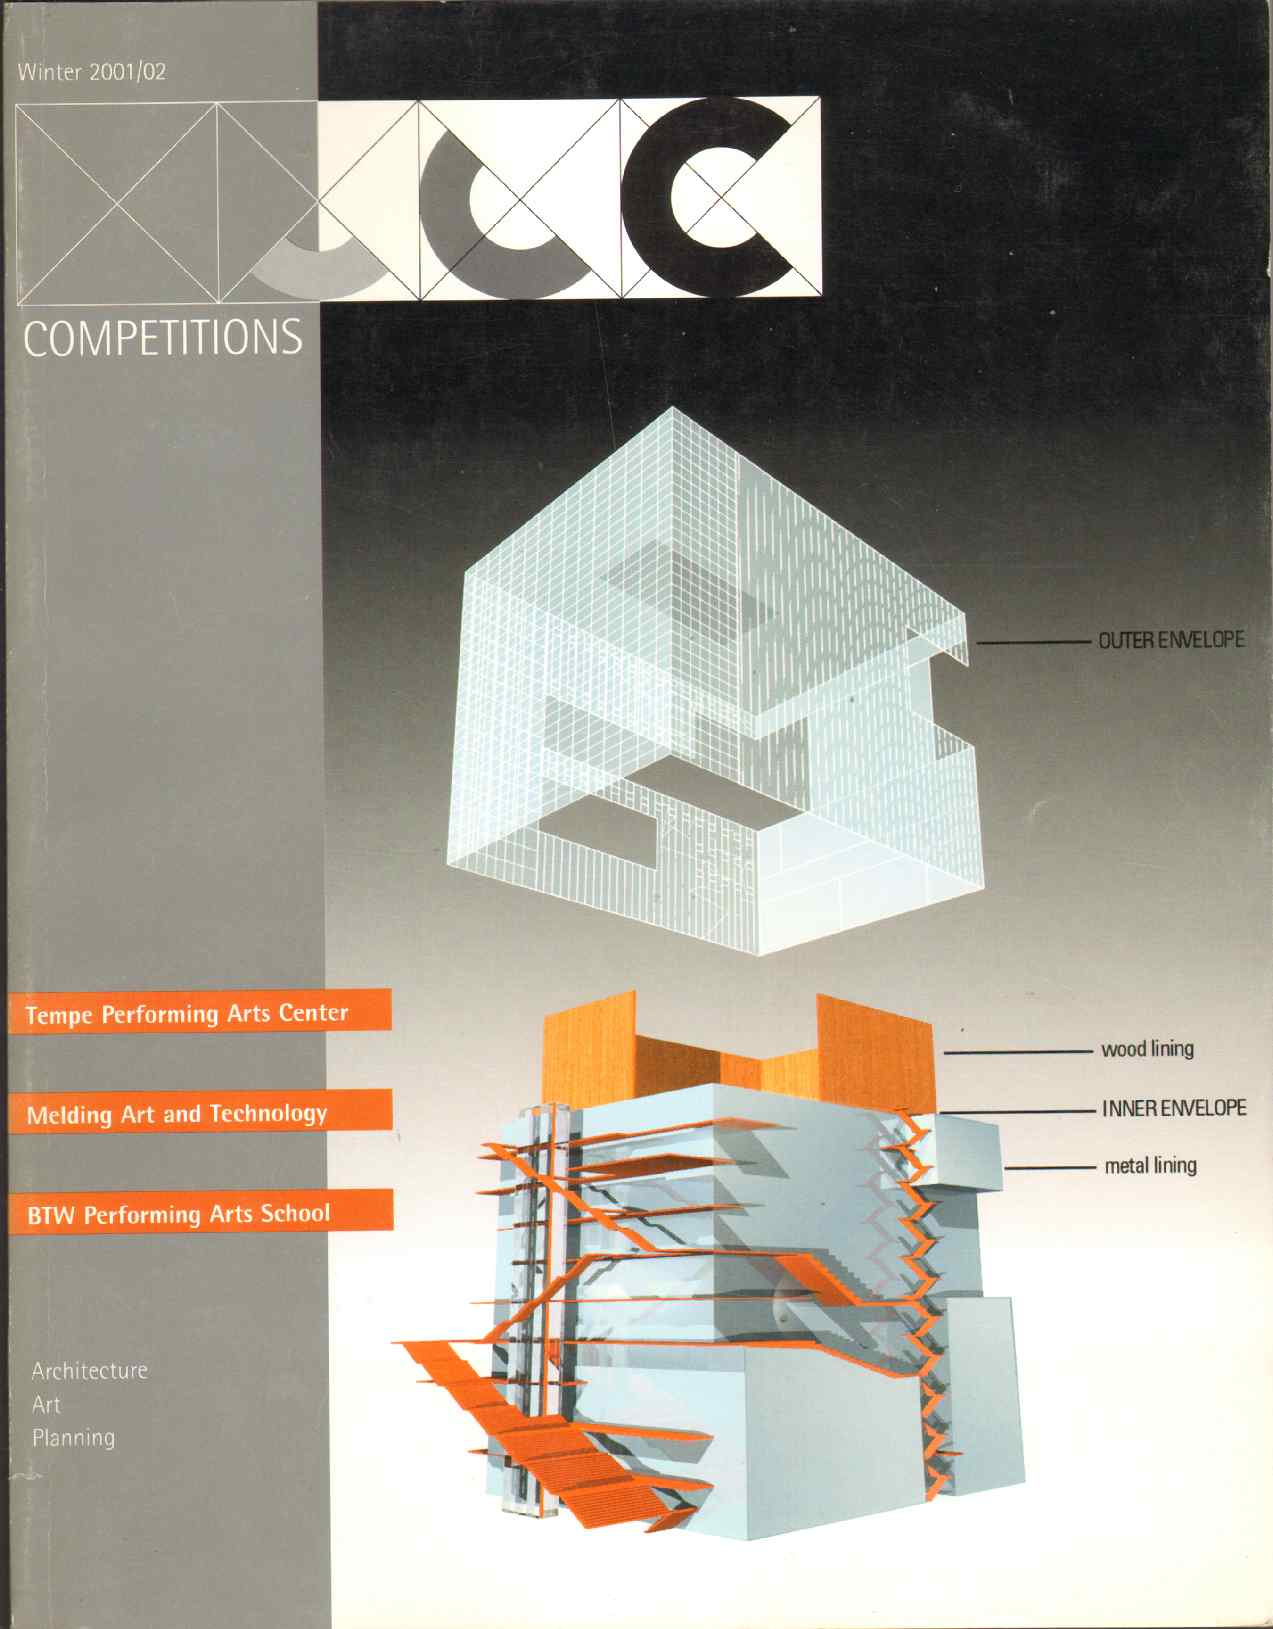 COMPETITIONS - Architecture, Art, Planning - Winter 2001/2002 Volume 11, Number 4, Collyer, G. Stanley; editor